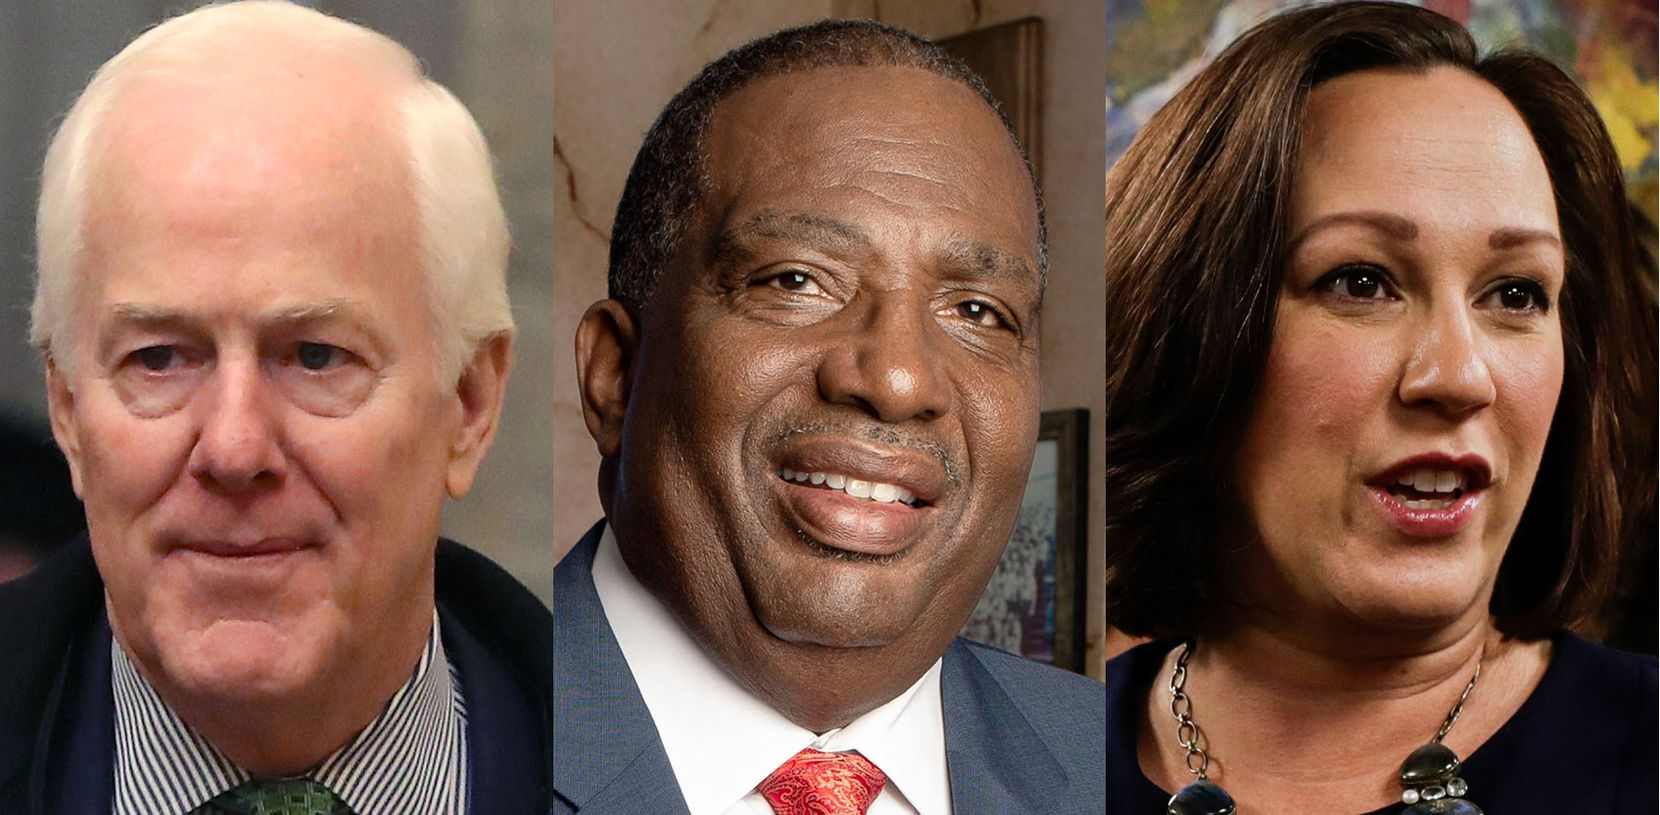 In the fall election, U.S. Sen. John Cornyn of Texas (left) will face the winner of a Democratic primary runoff between state Sen. Royce West of Dallas and MJ Hegar of Round Rock.